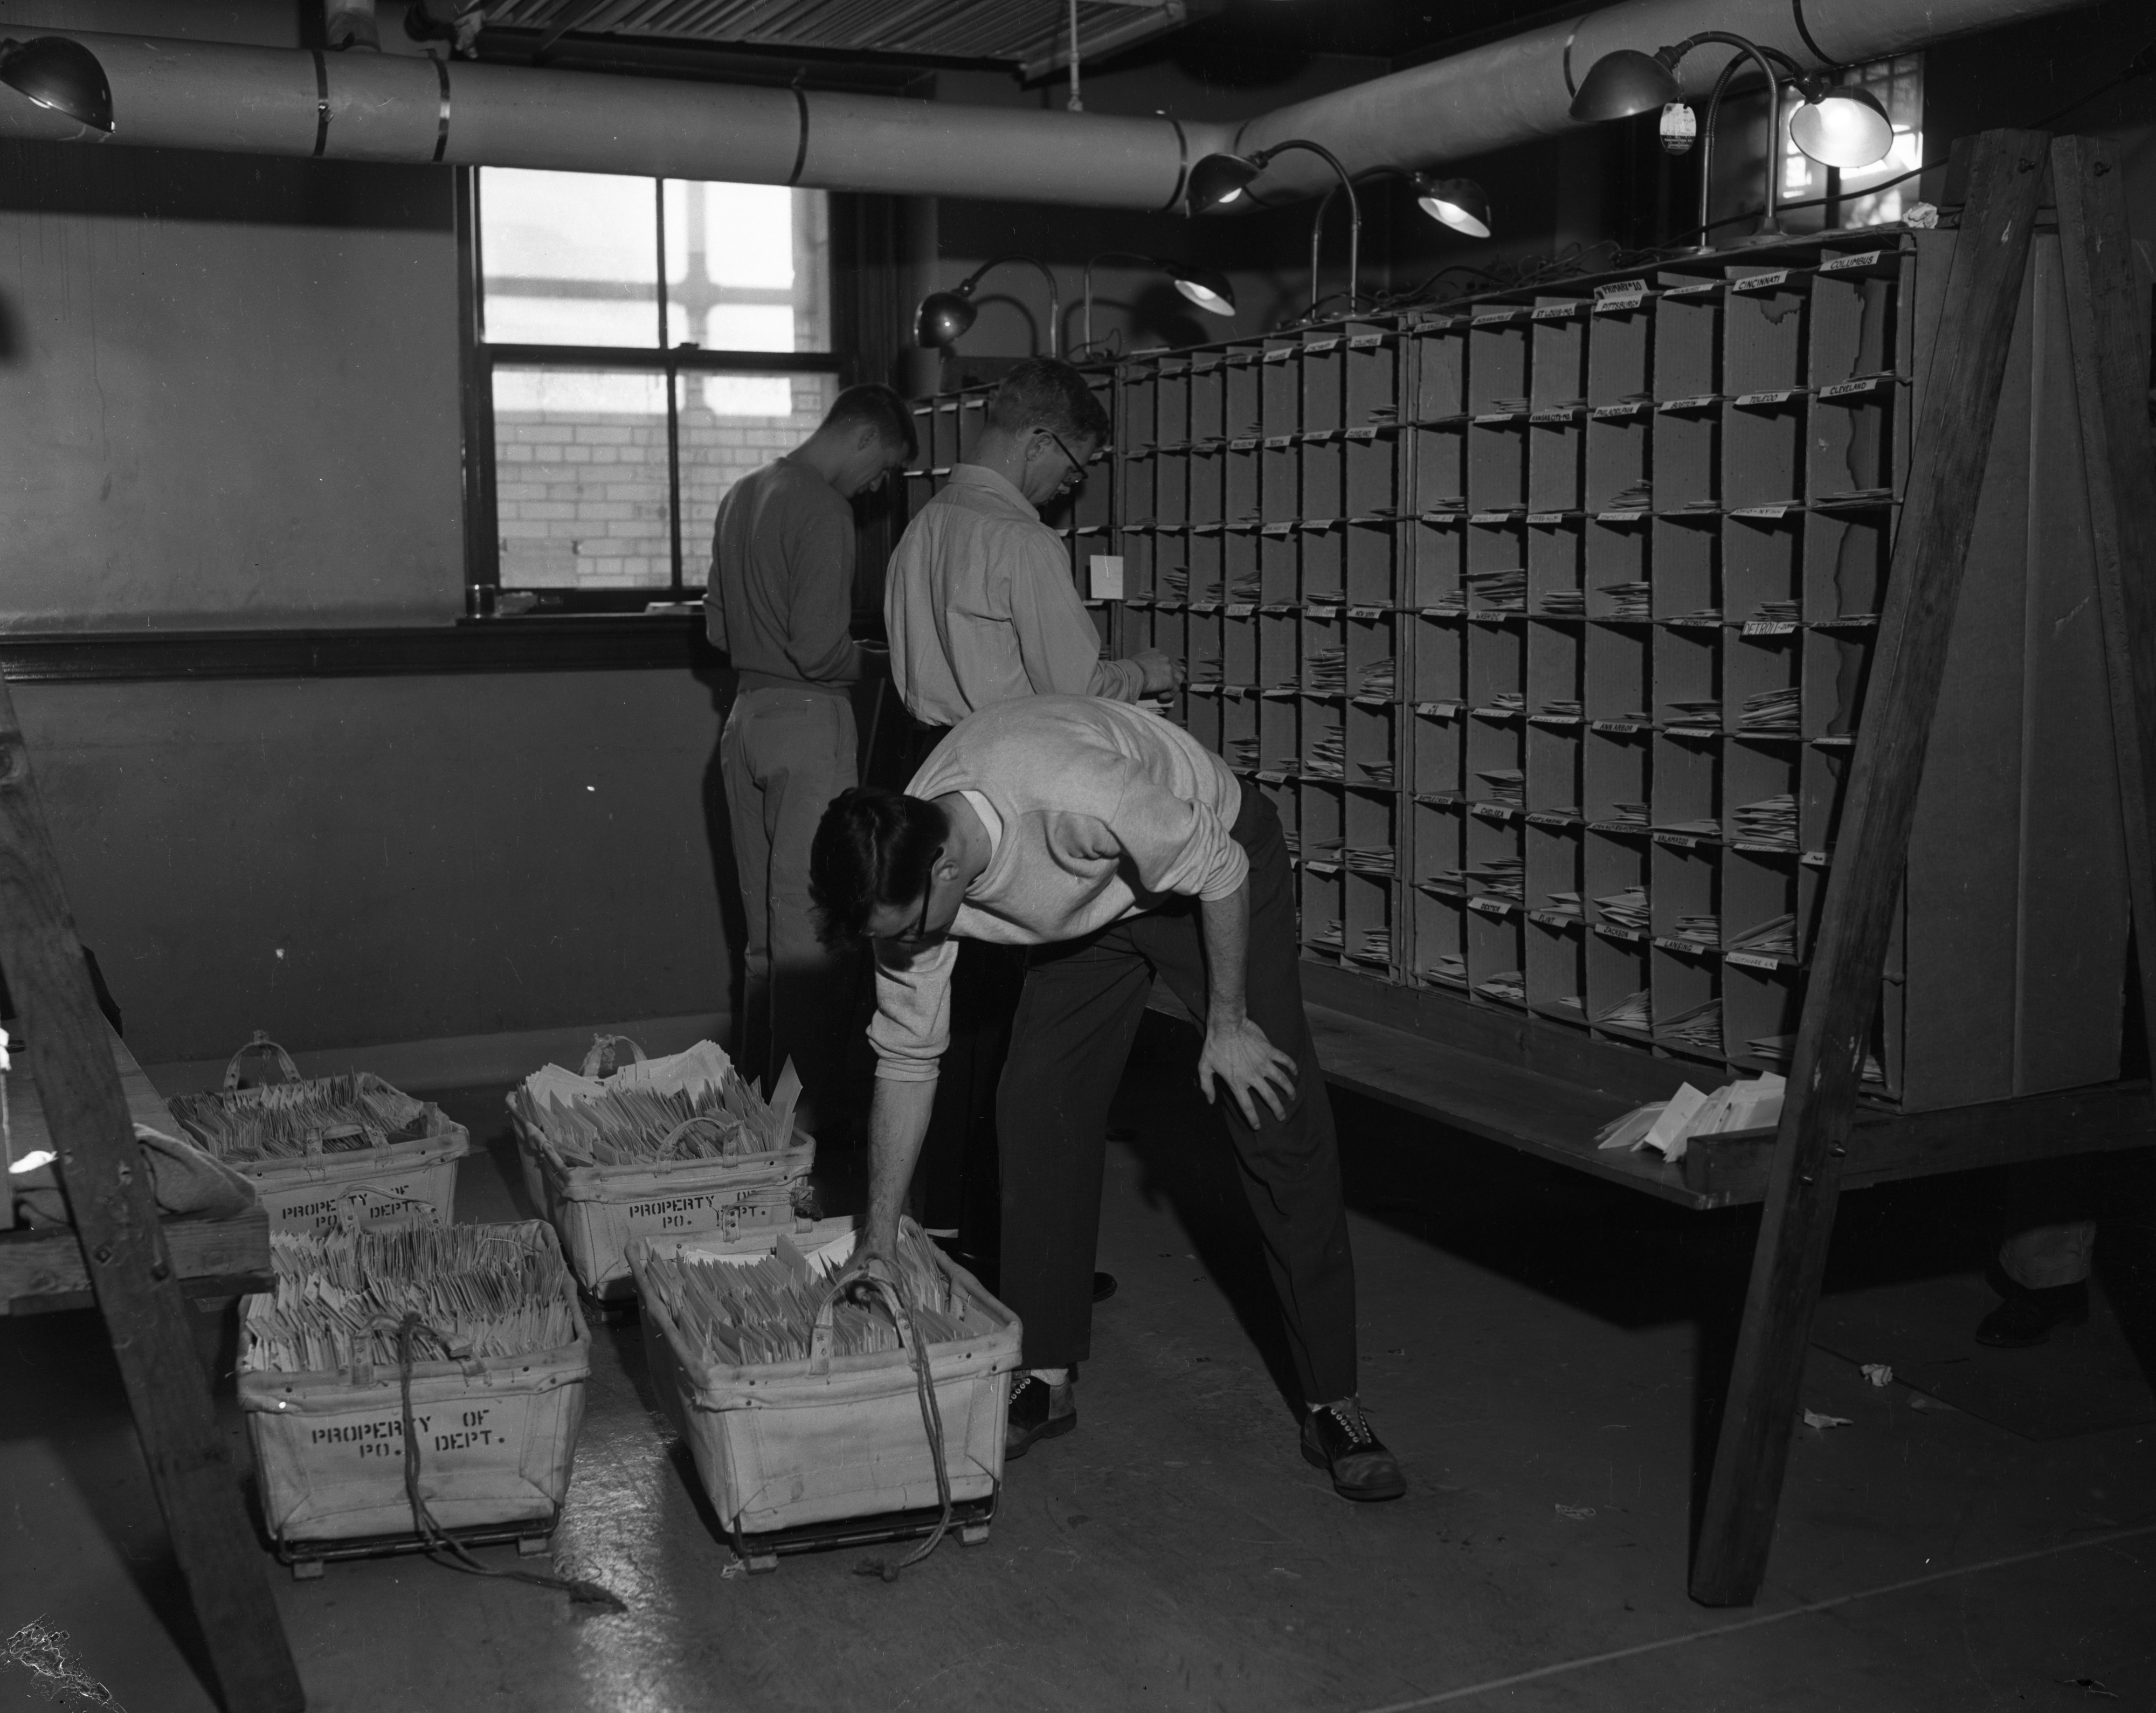 Part-time workers sort mail at the Ann Arbor Post Office during the Christmas season, December 1955 image